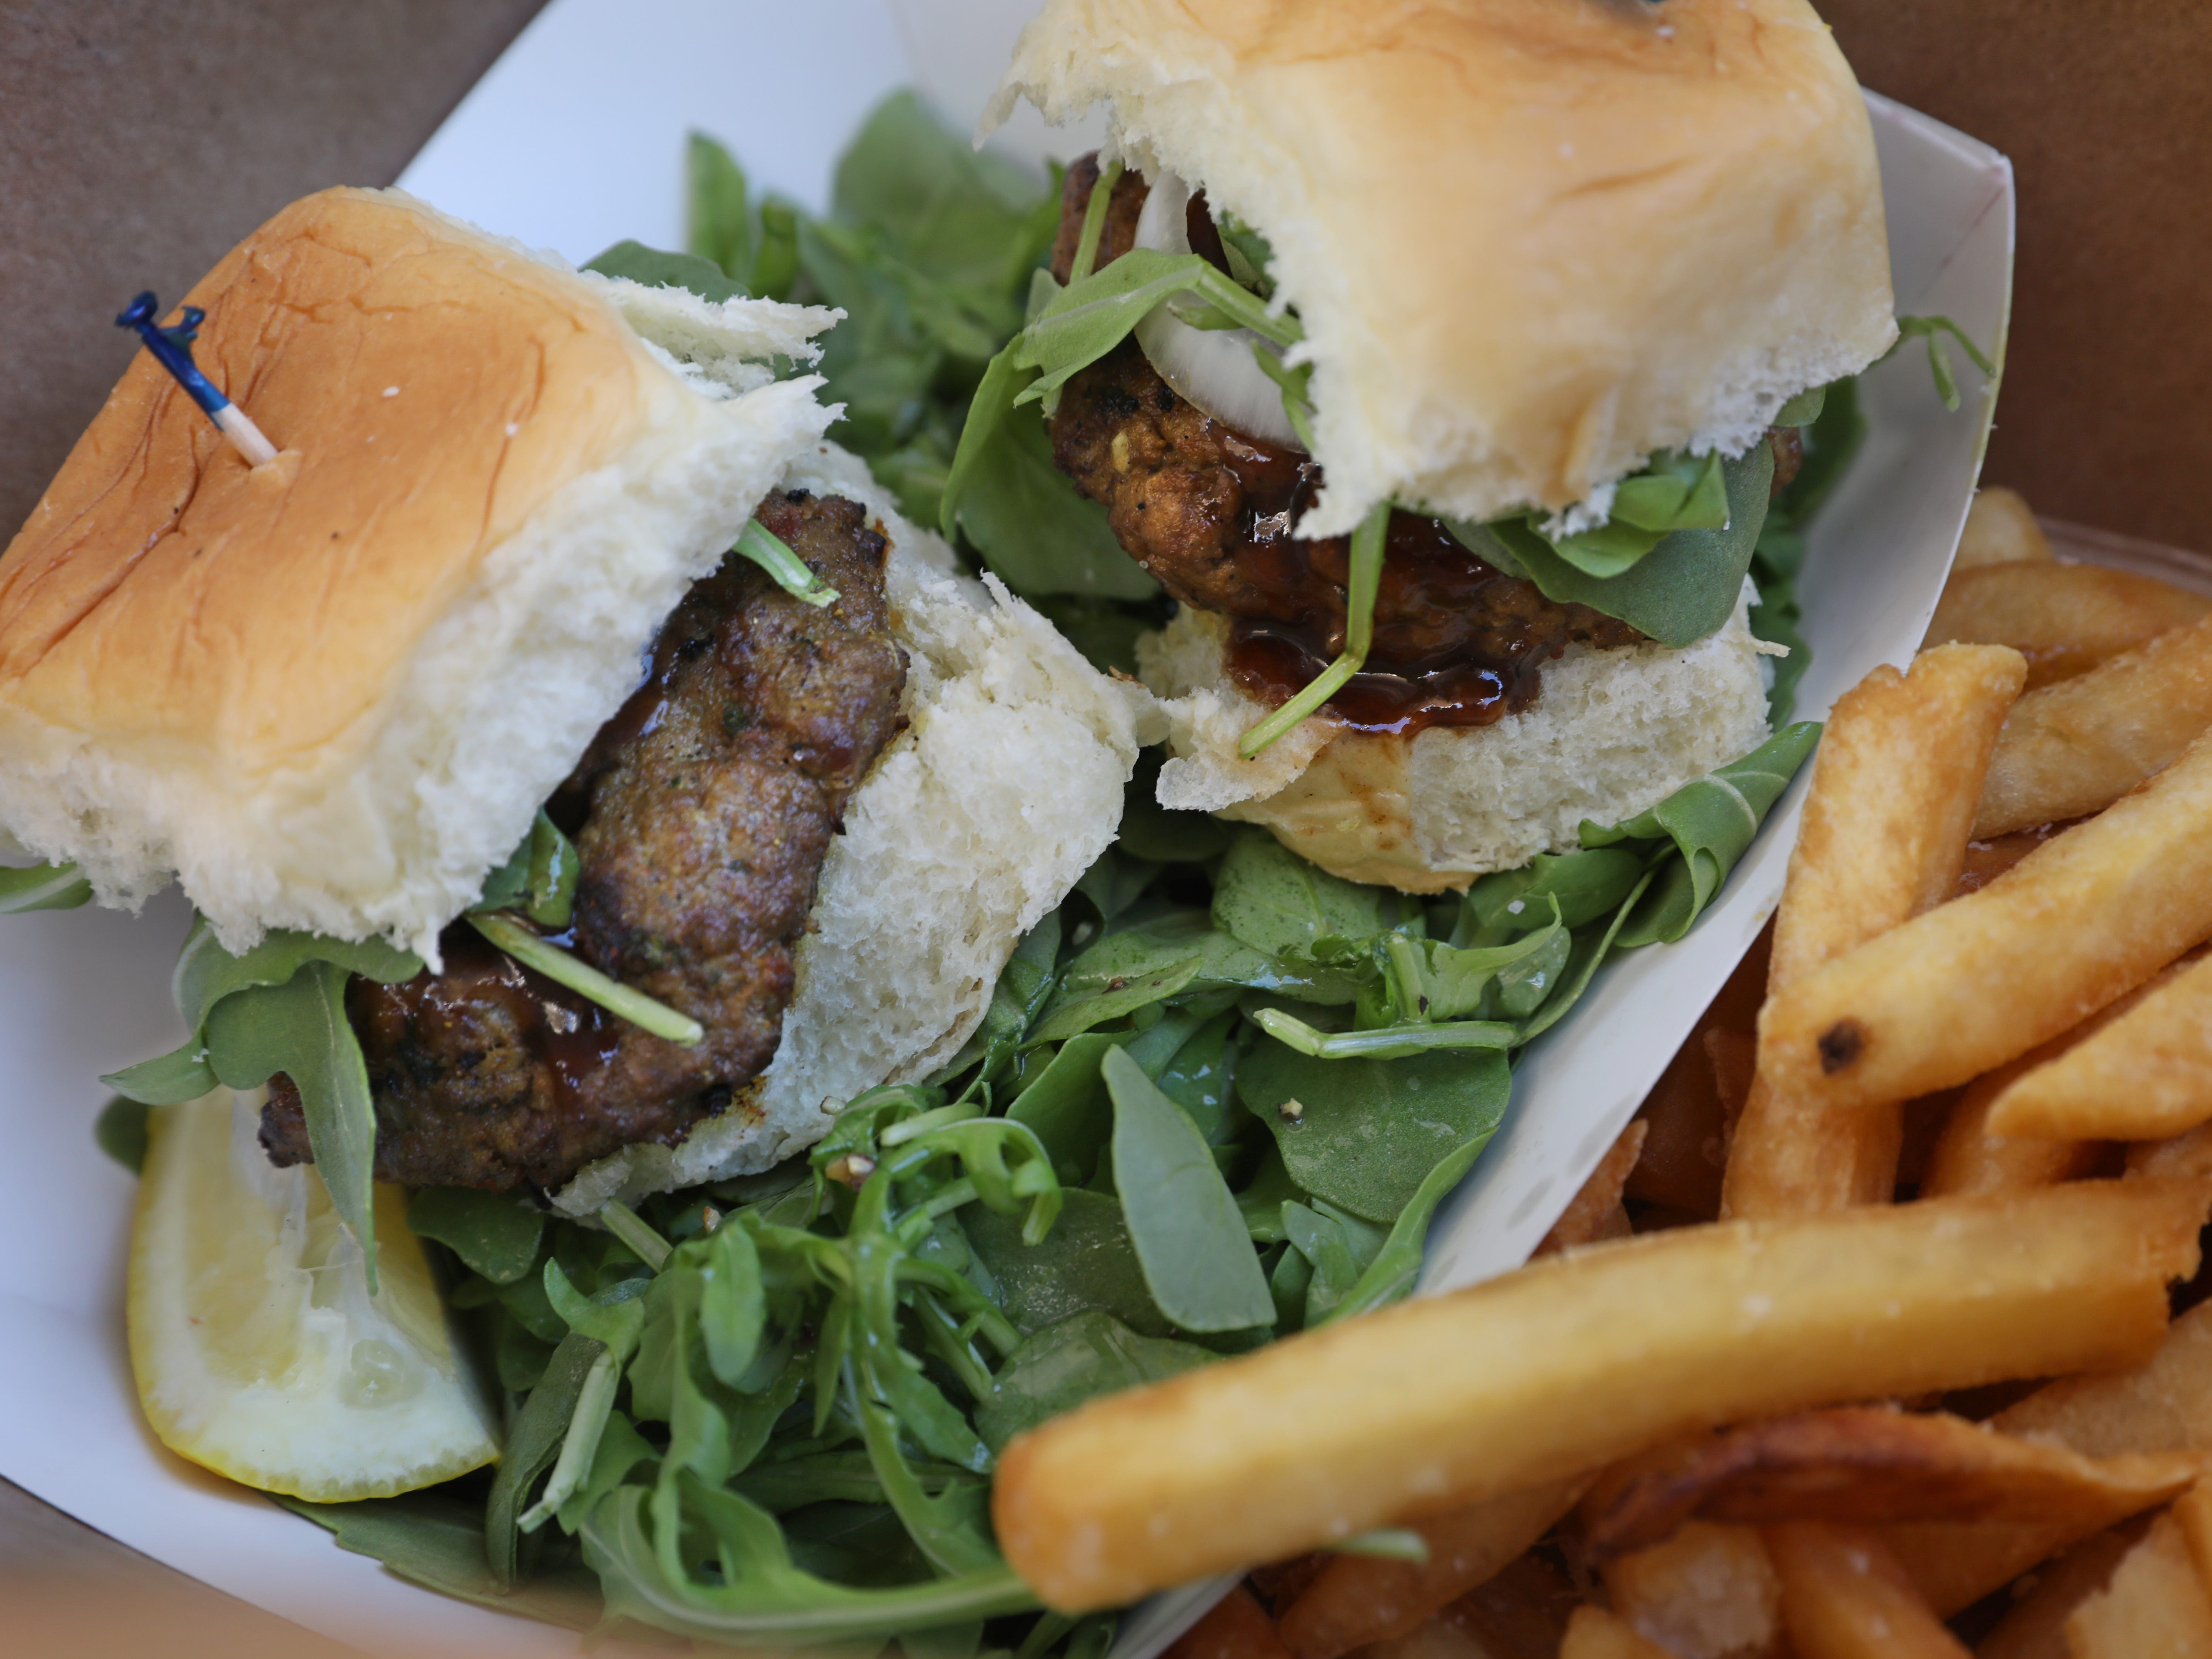 Chapli kabab sliders are served with fries and a salad.